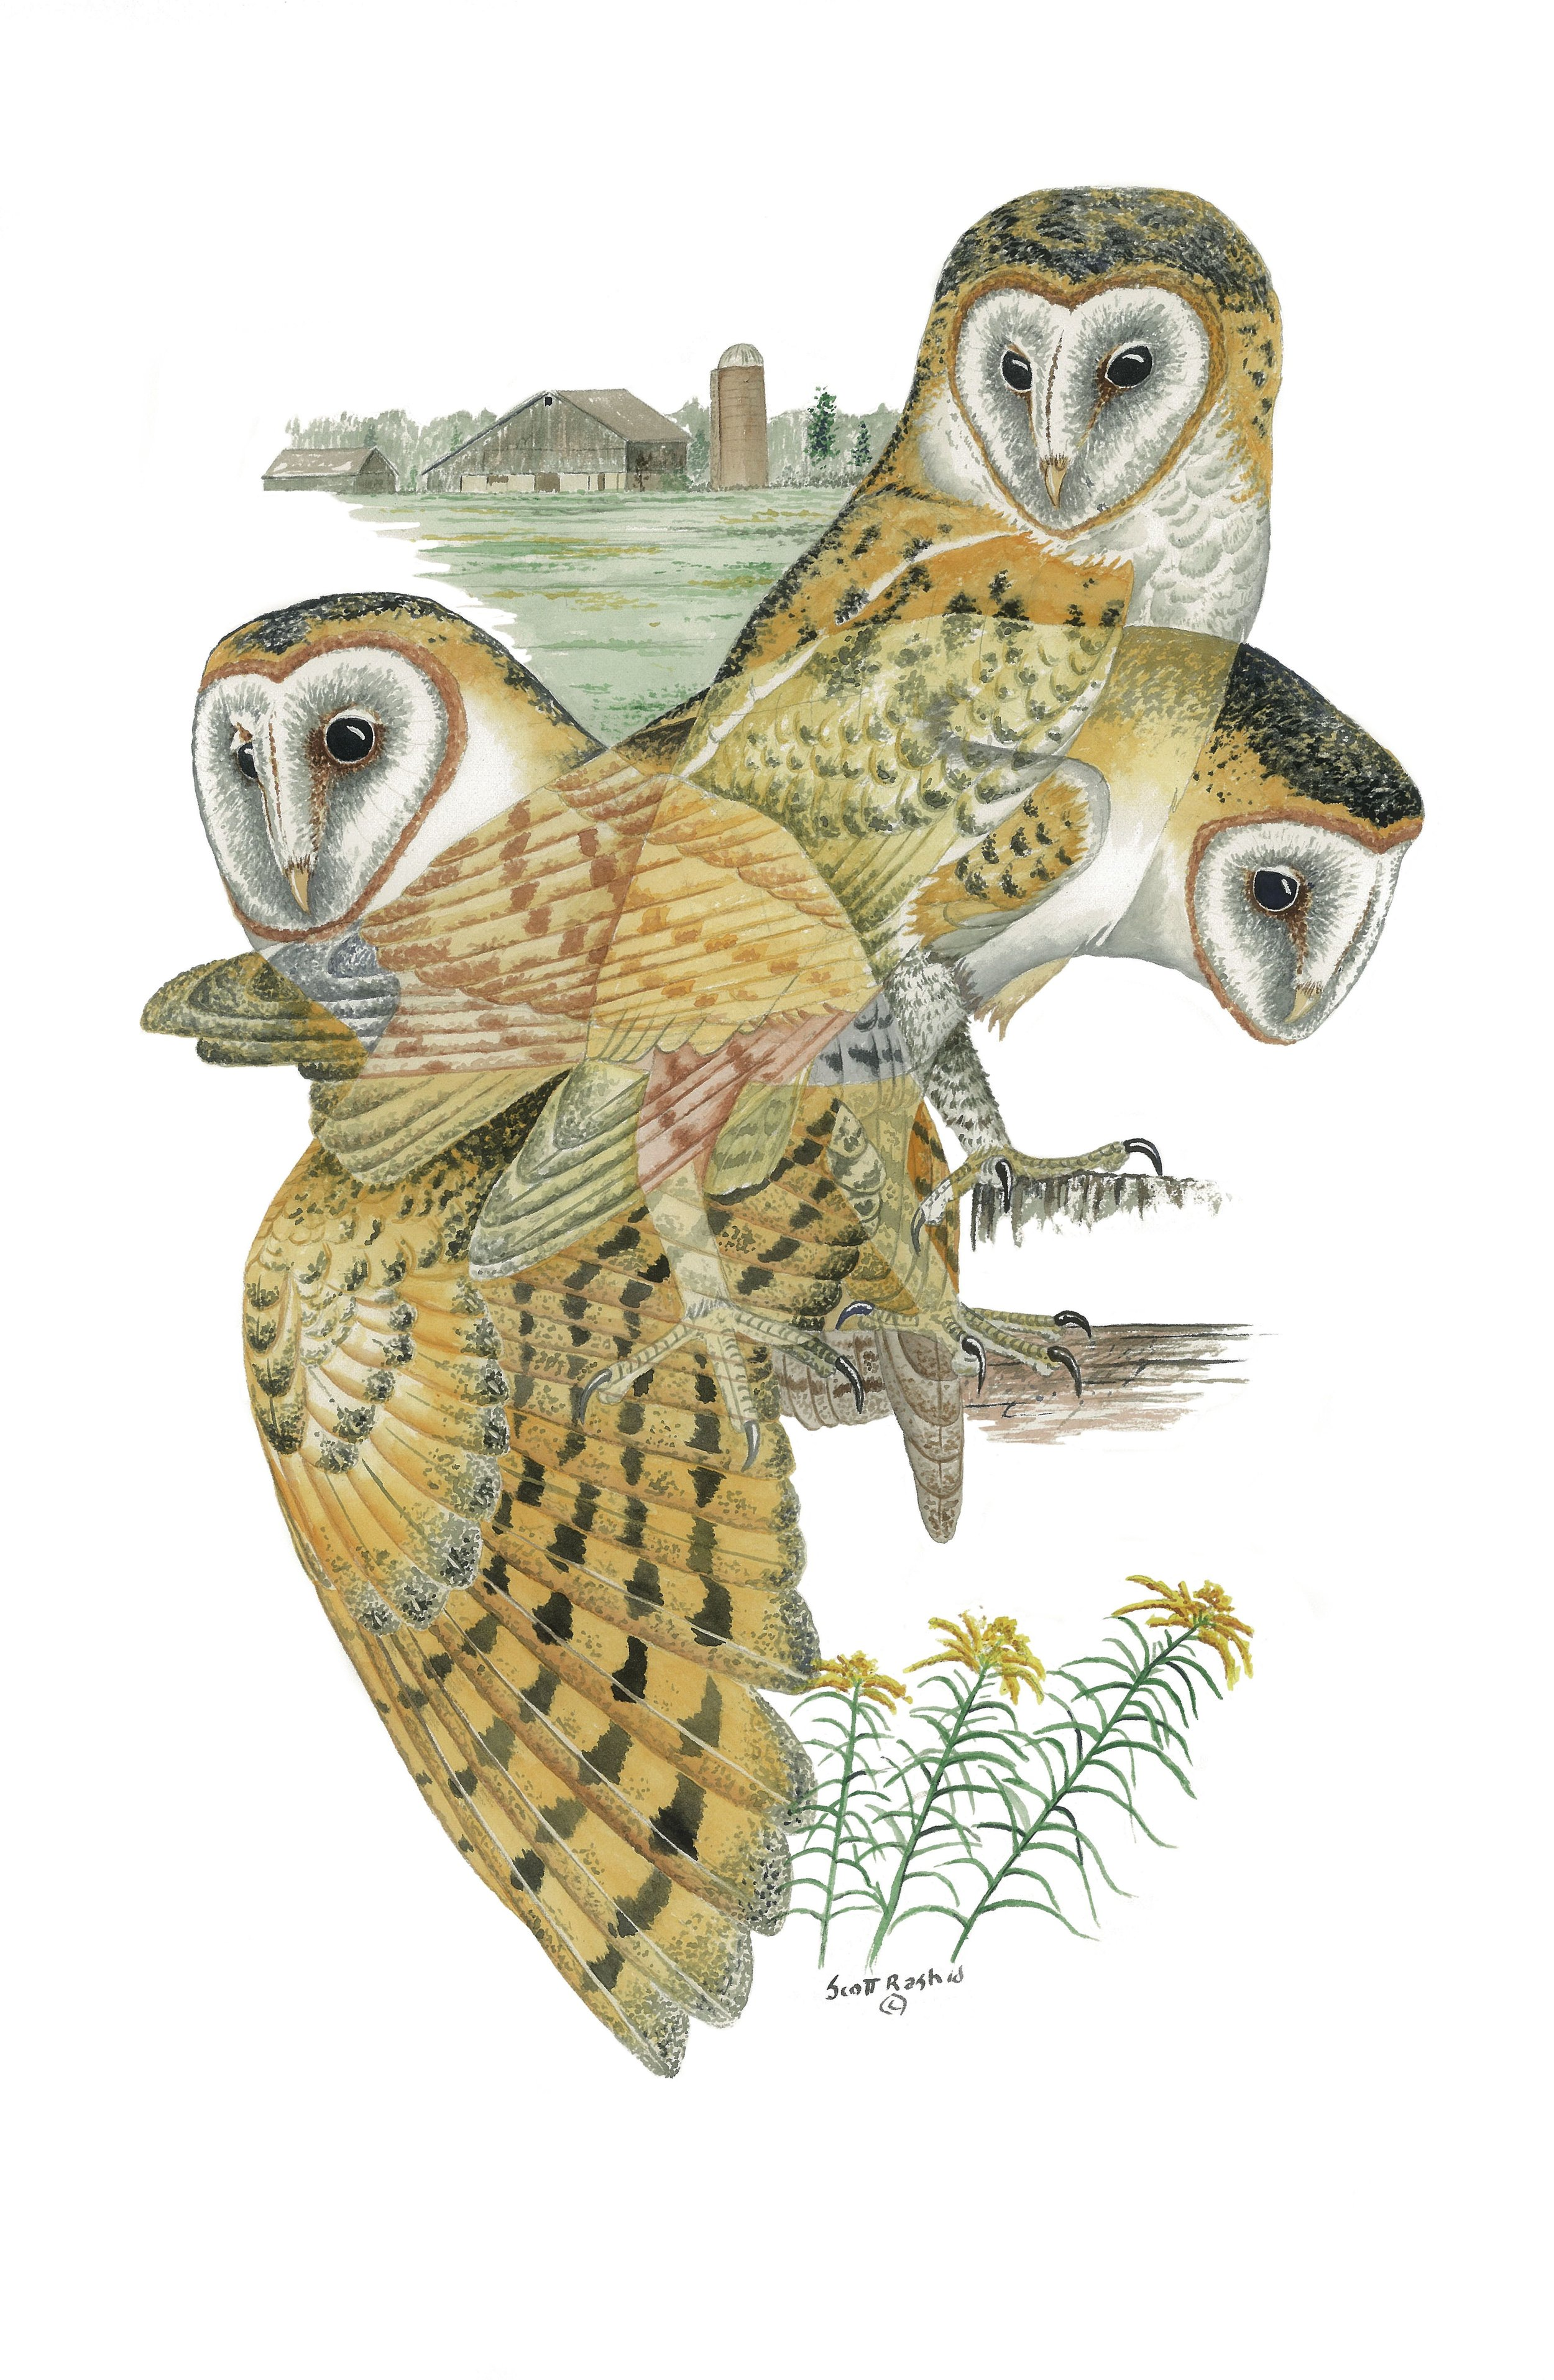 This is the Barn Owl image that you will receive for your Donation - It is printed from an original watercolor painting